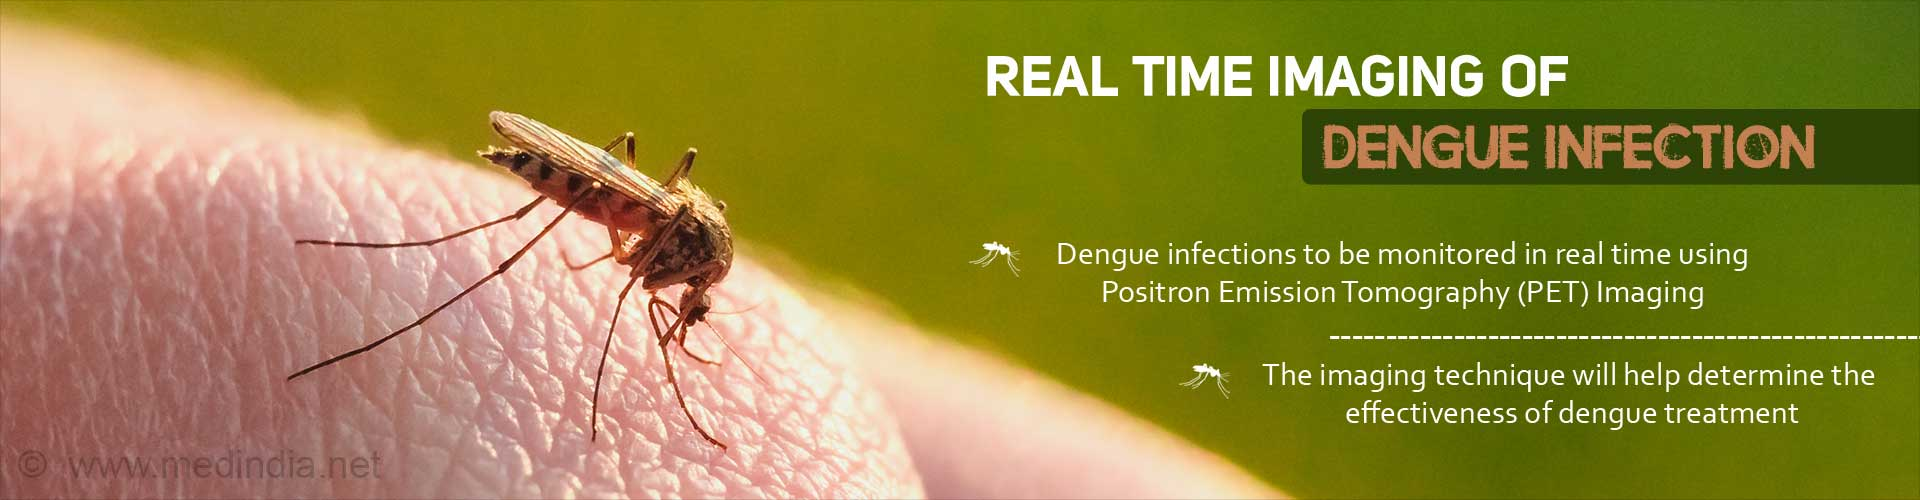 Dengue  Real Time Imaging Helps Monitor Progression of Infection